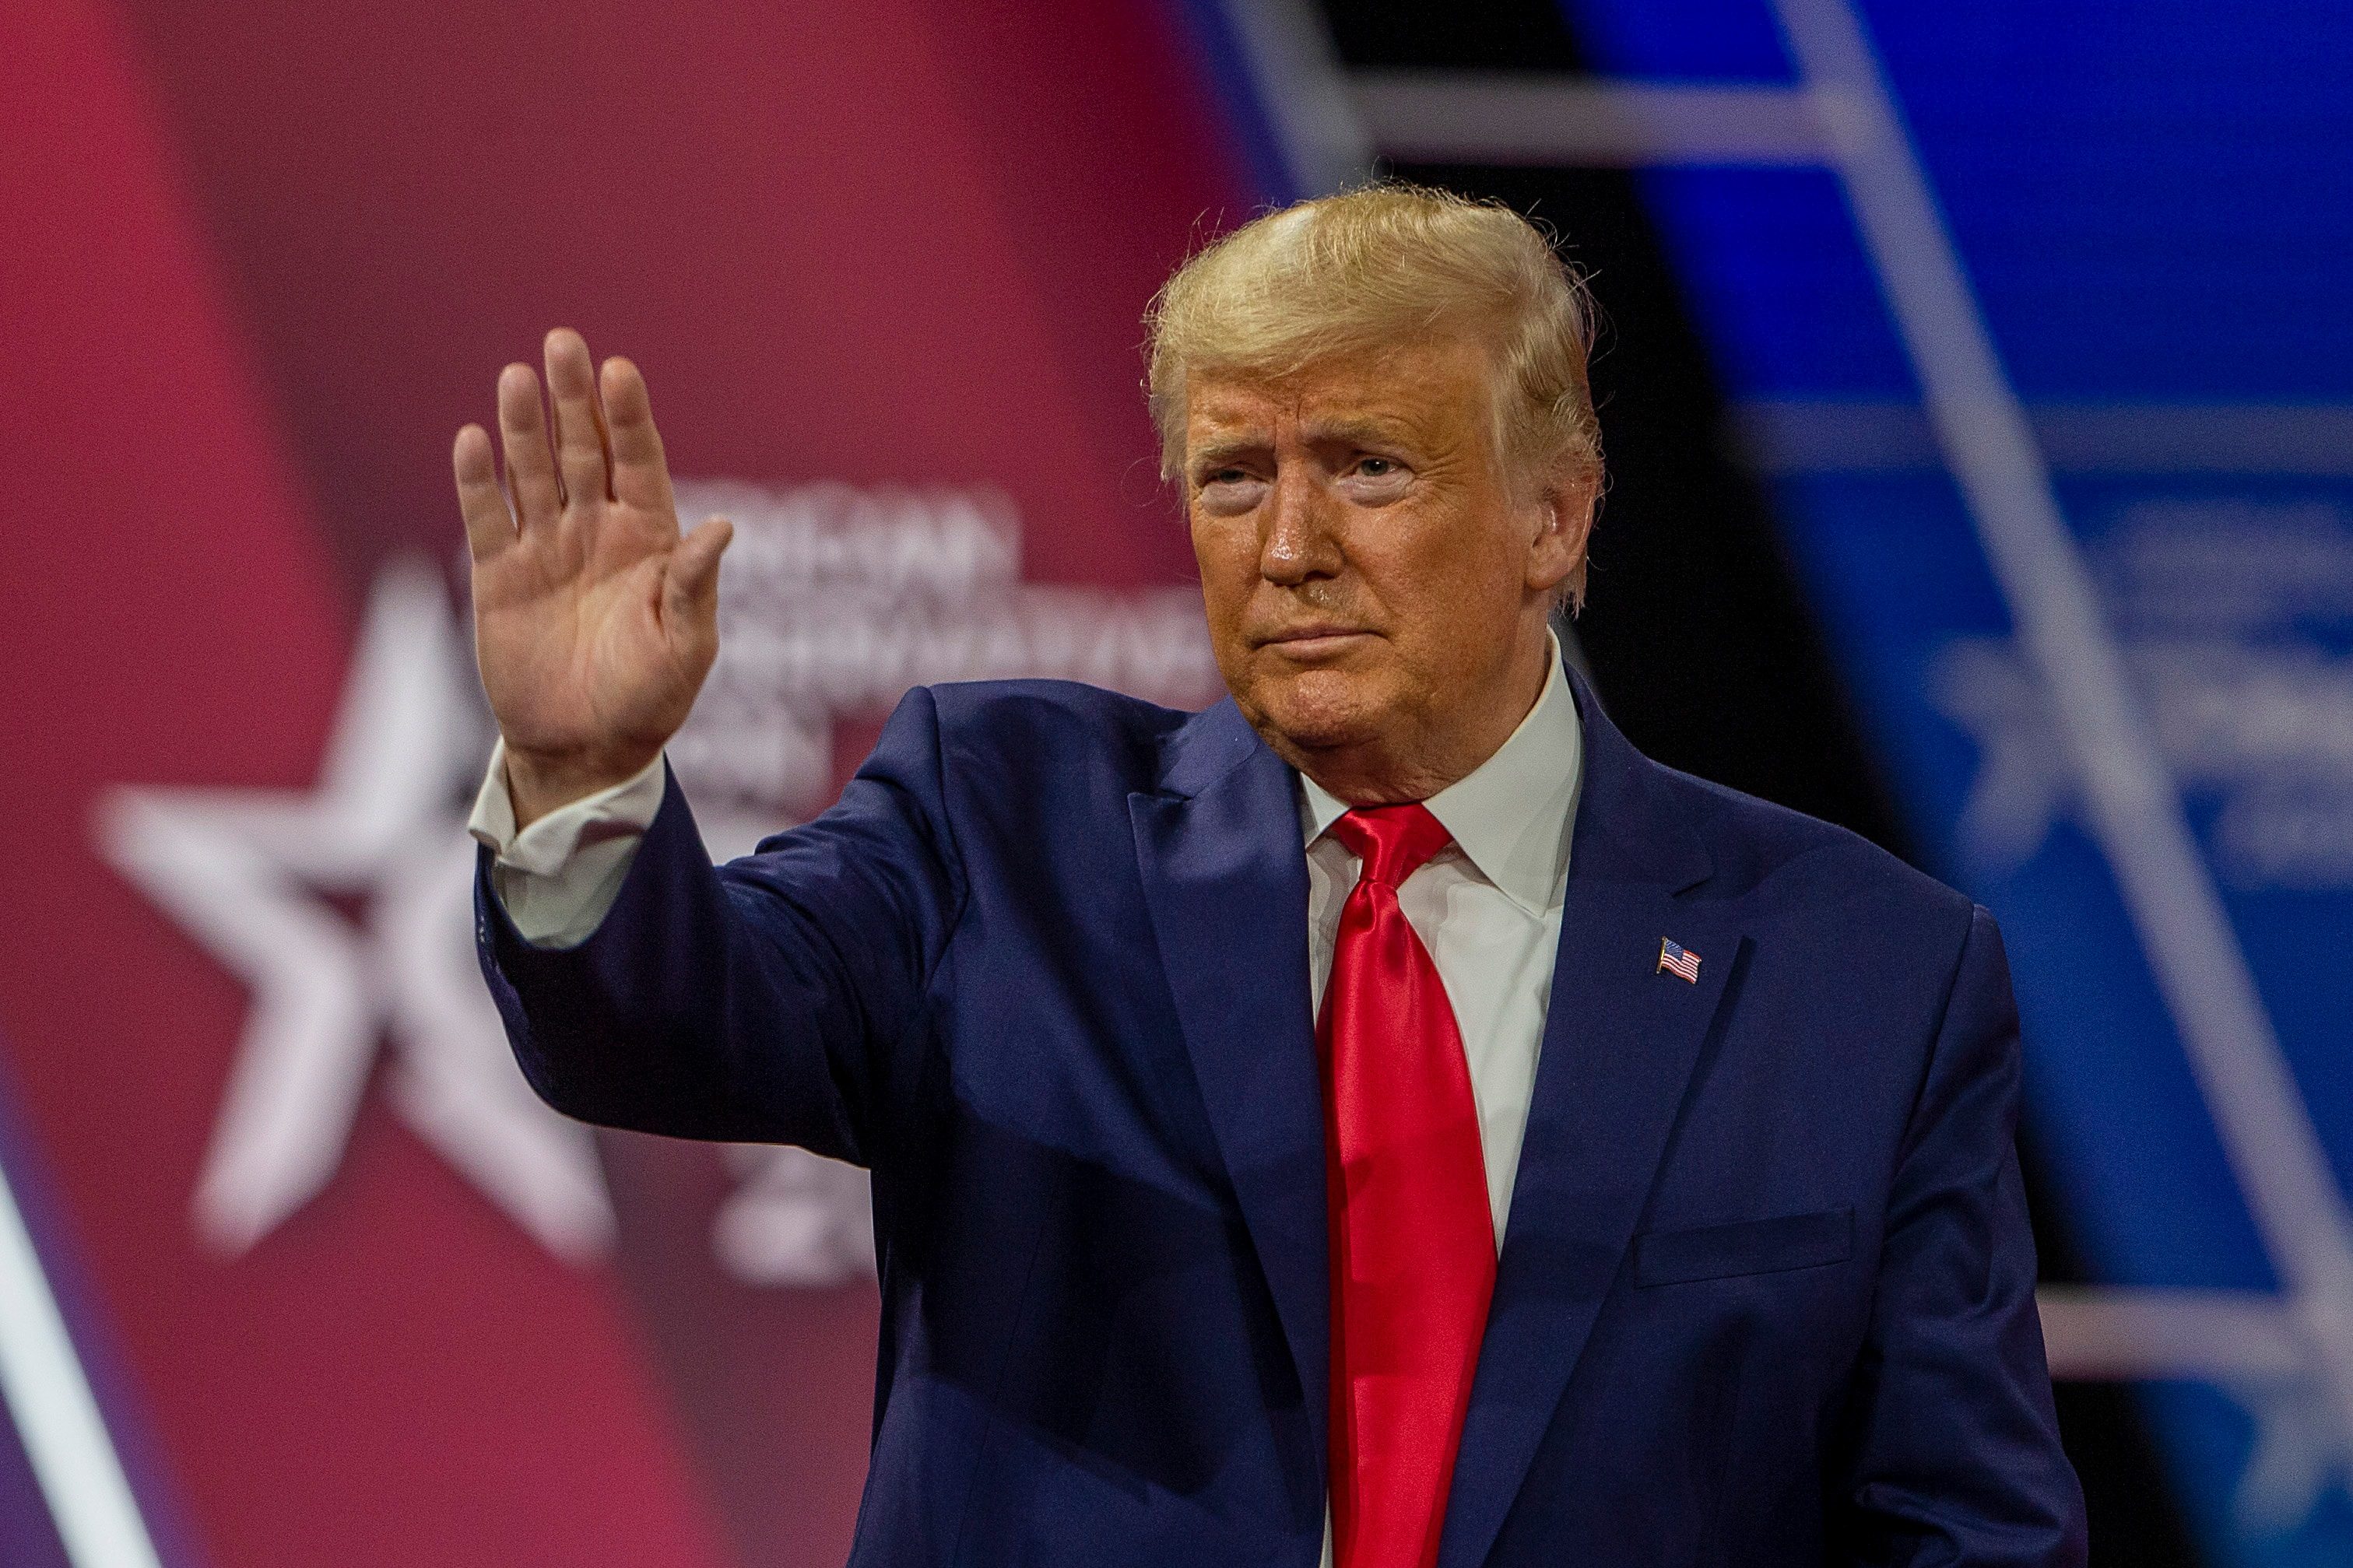 Trump to make his return at CPAC amid Republican Party divisions